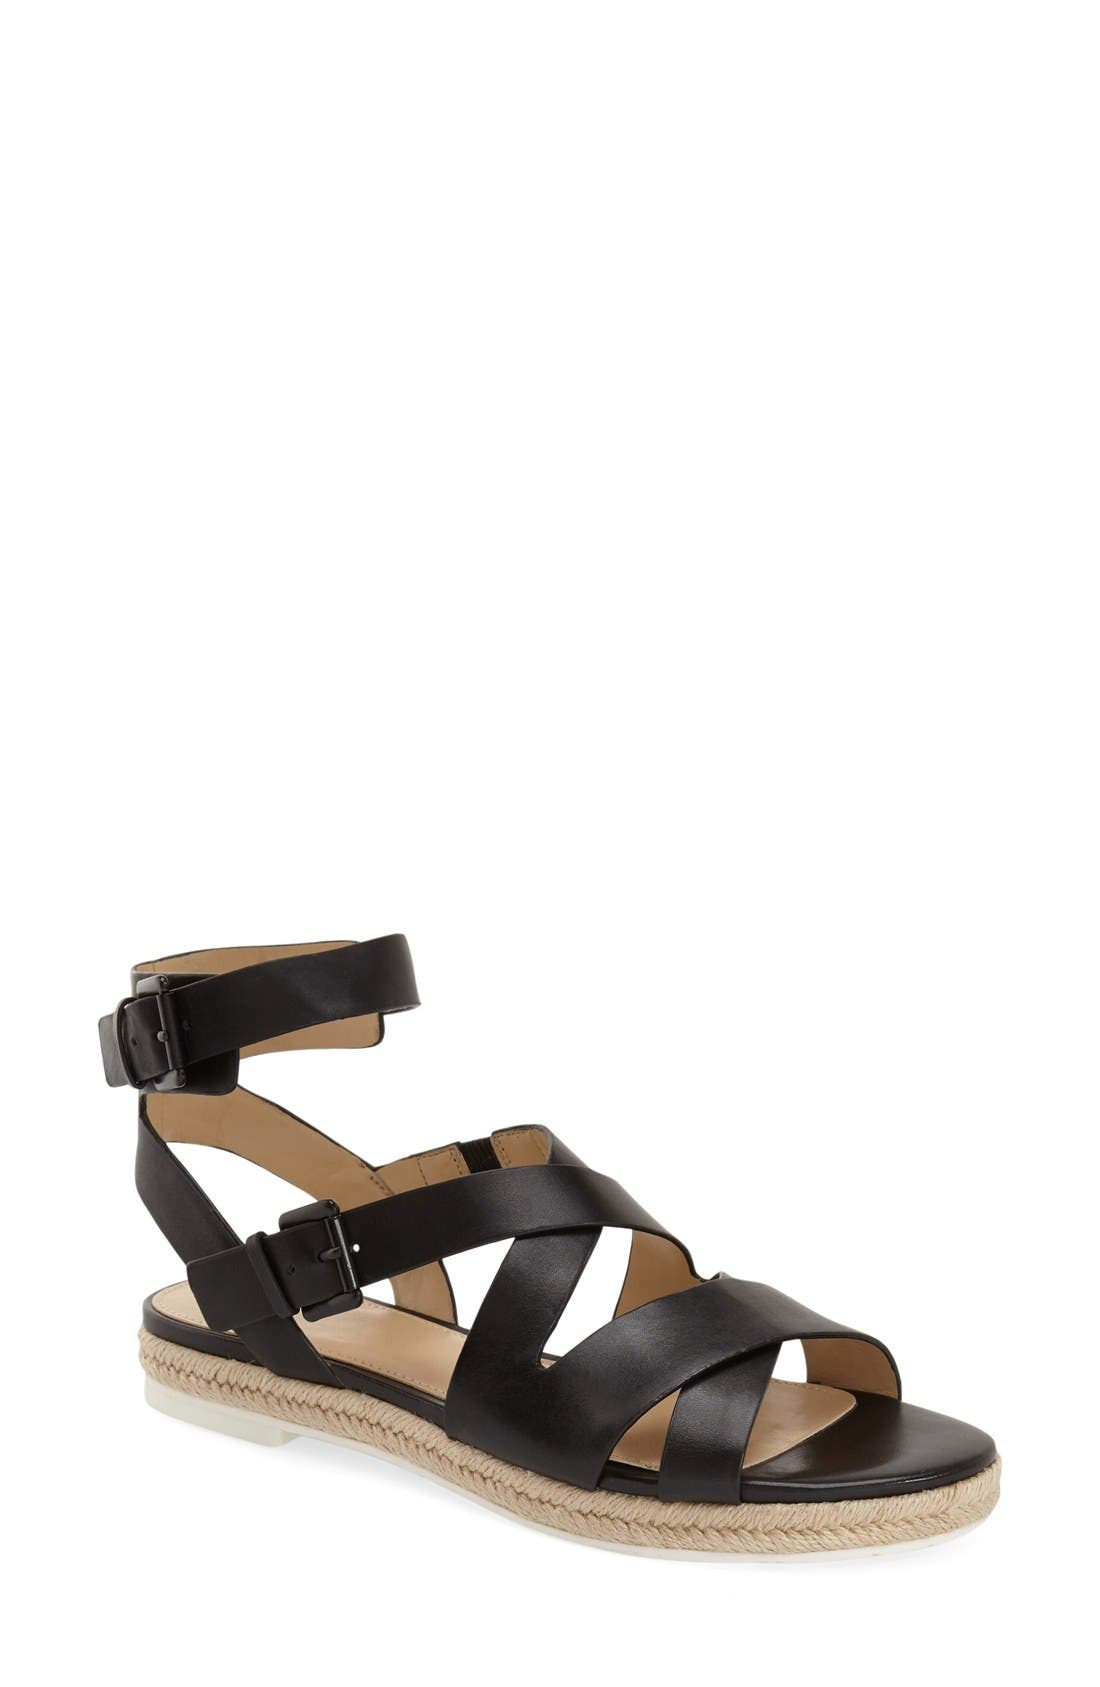 MARC FISHER LTD, 'Alysse' Flat Sandal, Main thumbnail 1, color, 001